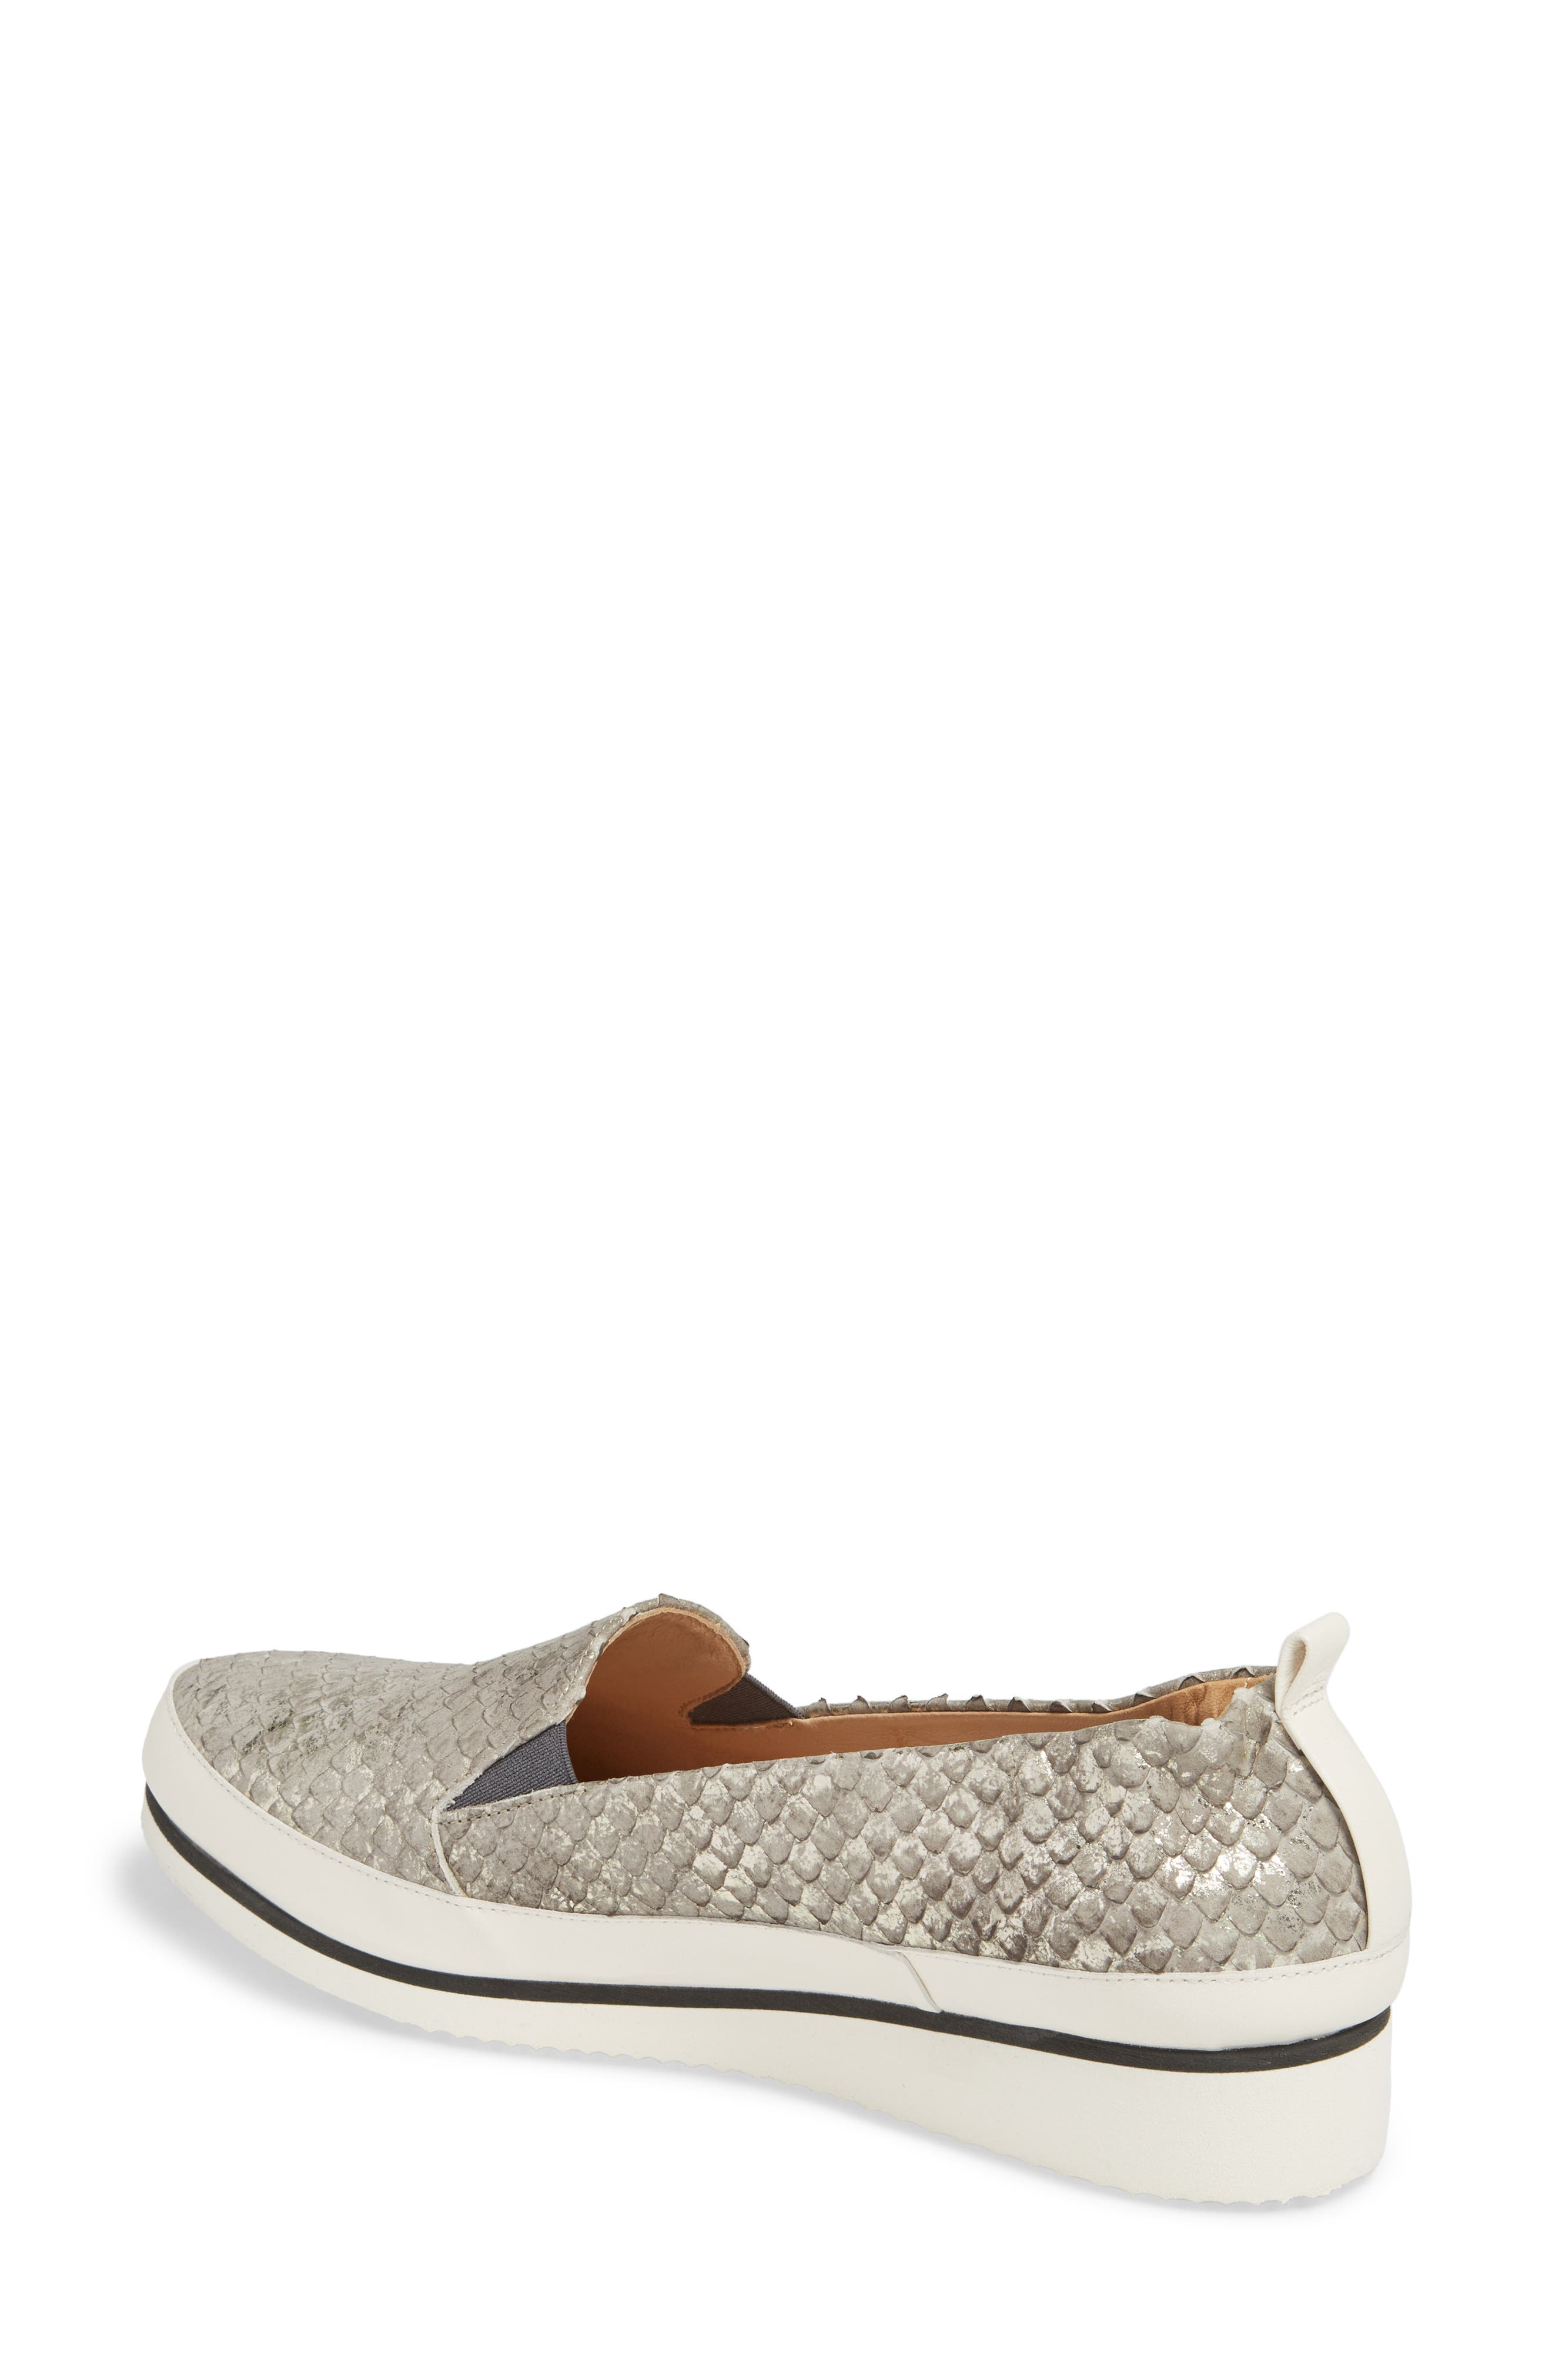 Nell Slip-On Sneaker,                             Alternate thumbnail 7, color,